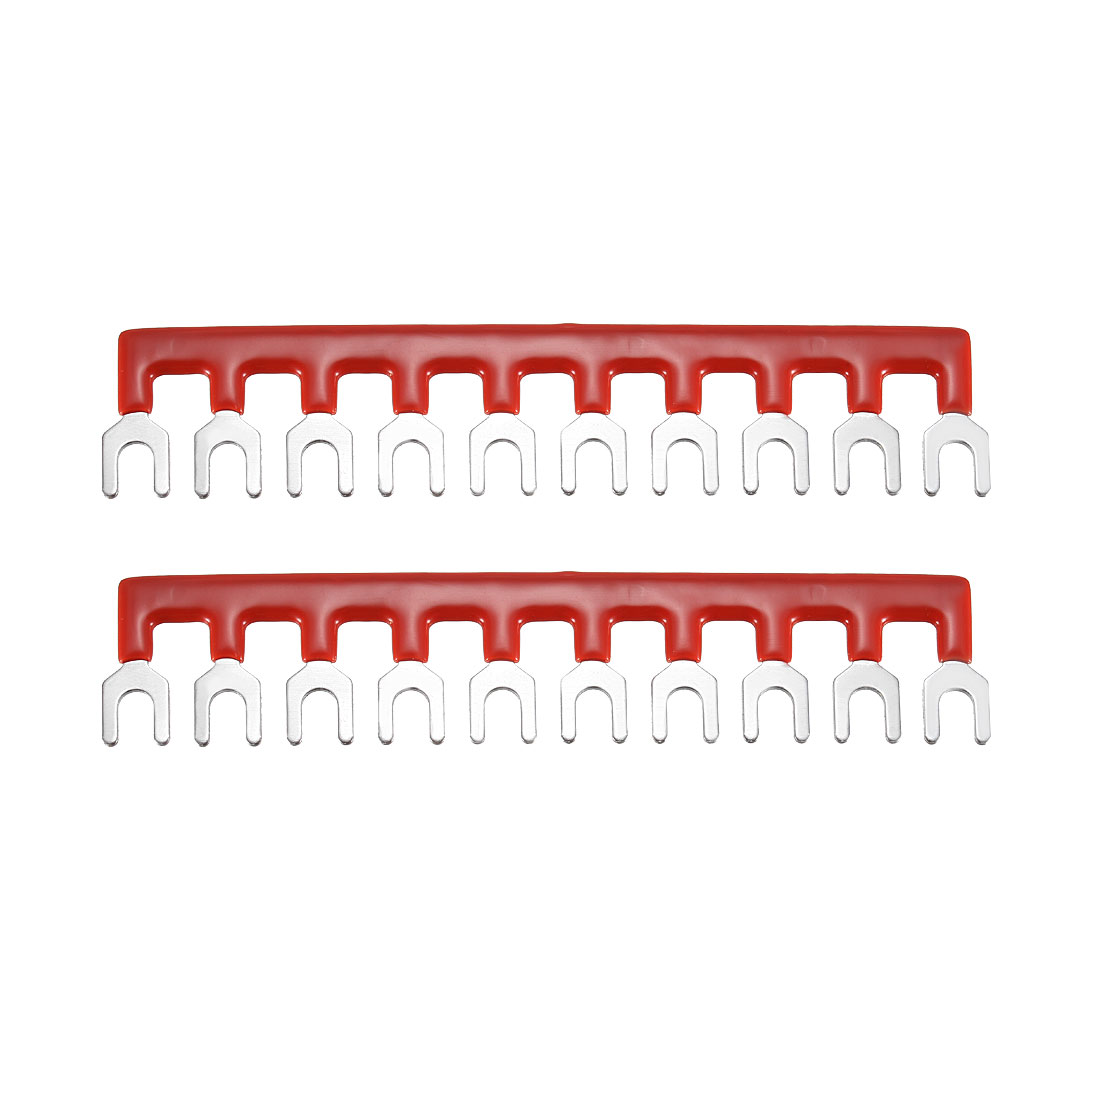 600V 20A 10 Positions Terminal Block Barrier Strip Fork Type Red 2 Pcs